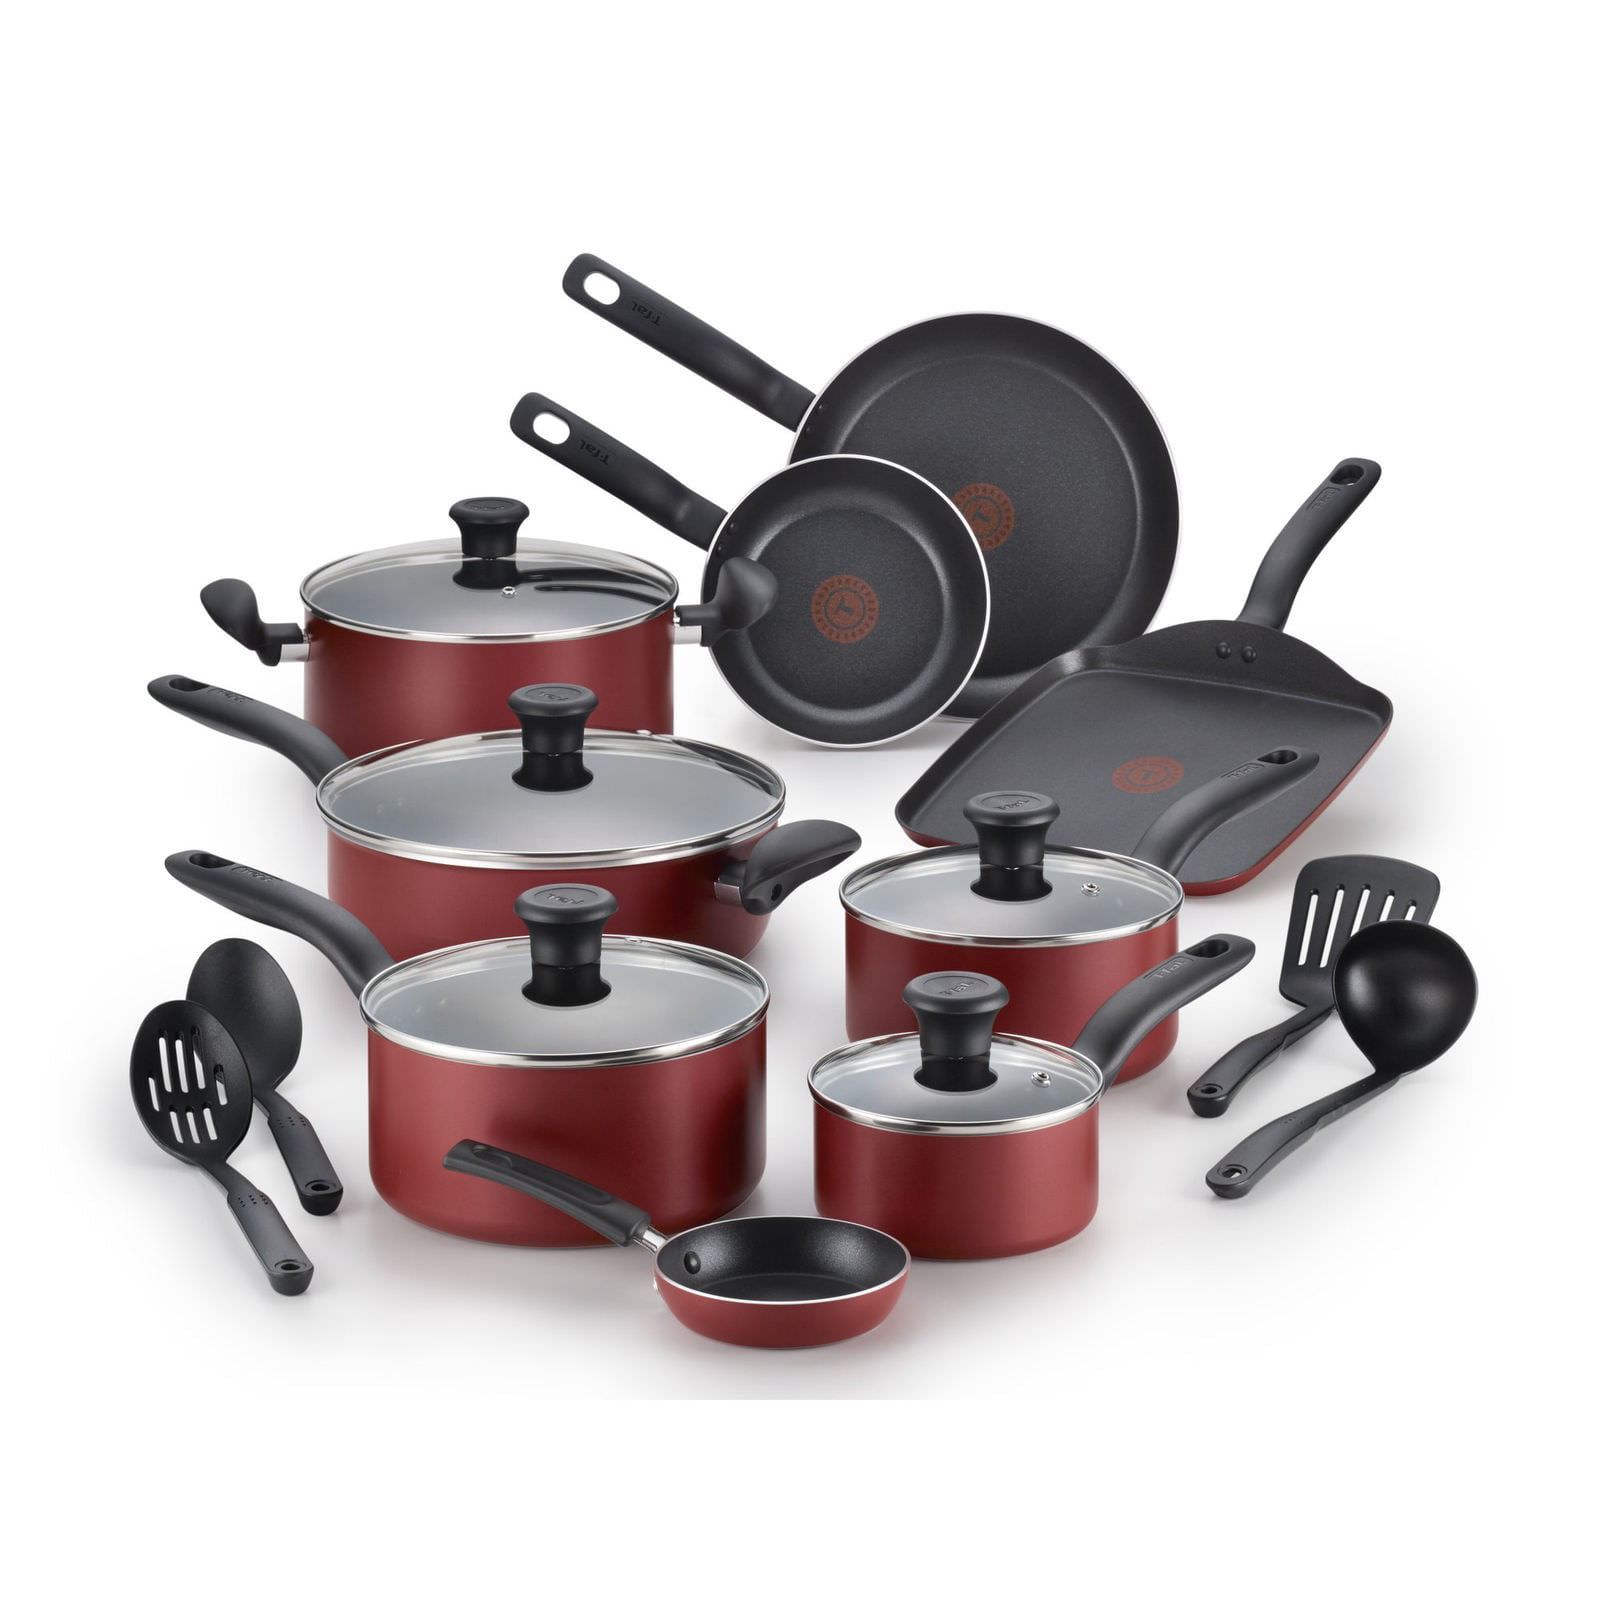 T-Fal Initiatives 18-Piece Cookware Set Red by T-FAL